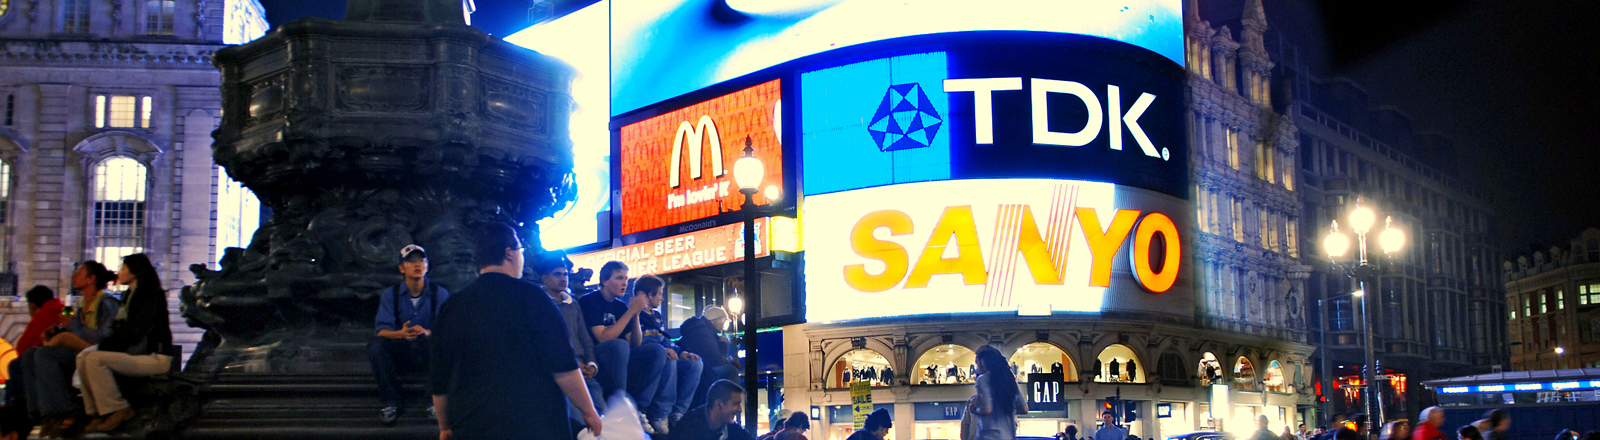 Werbung am Piccadilly Circus in London